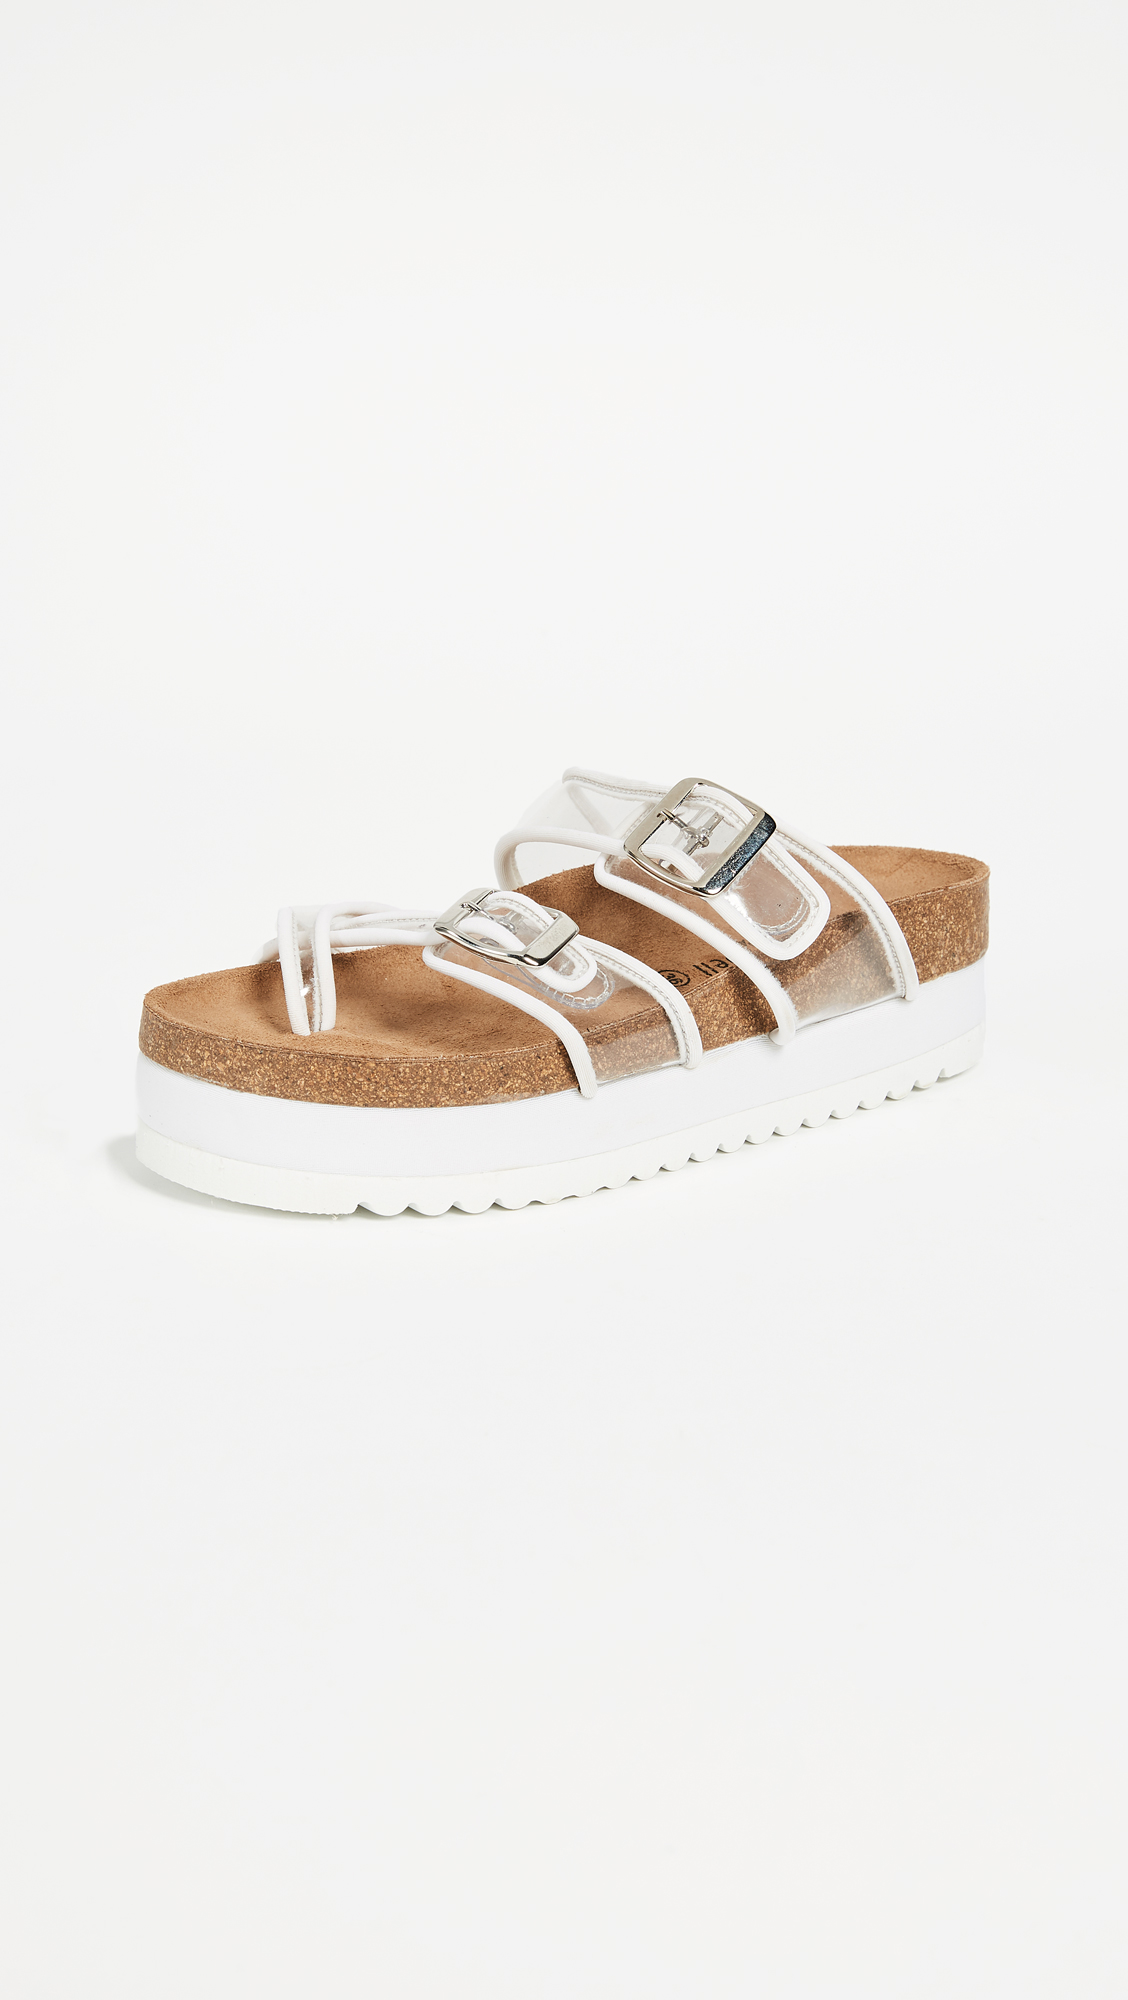 Jeffrey Campbell Fatu PVC Sandals - White/Clear